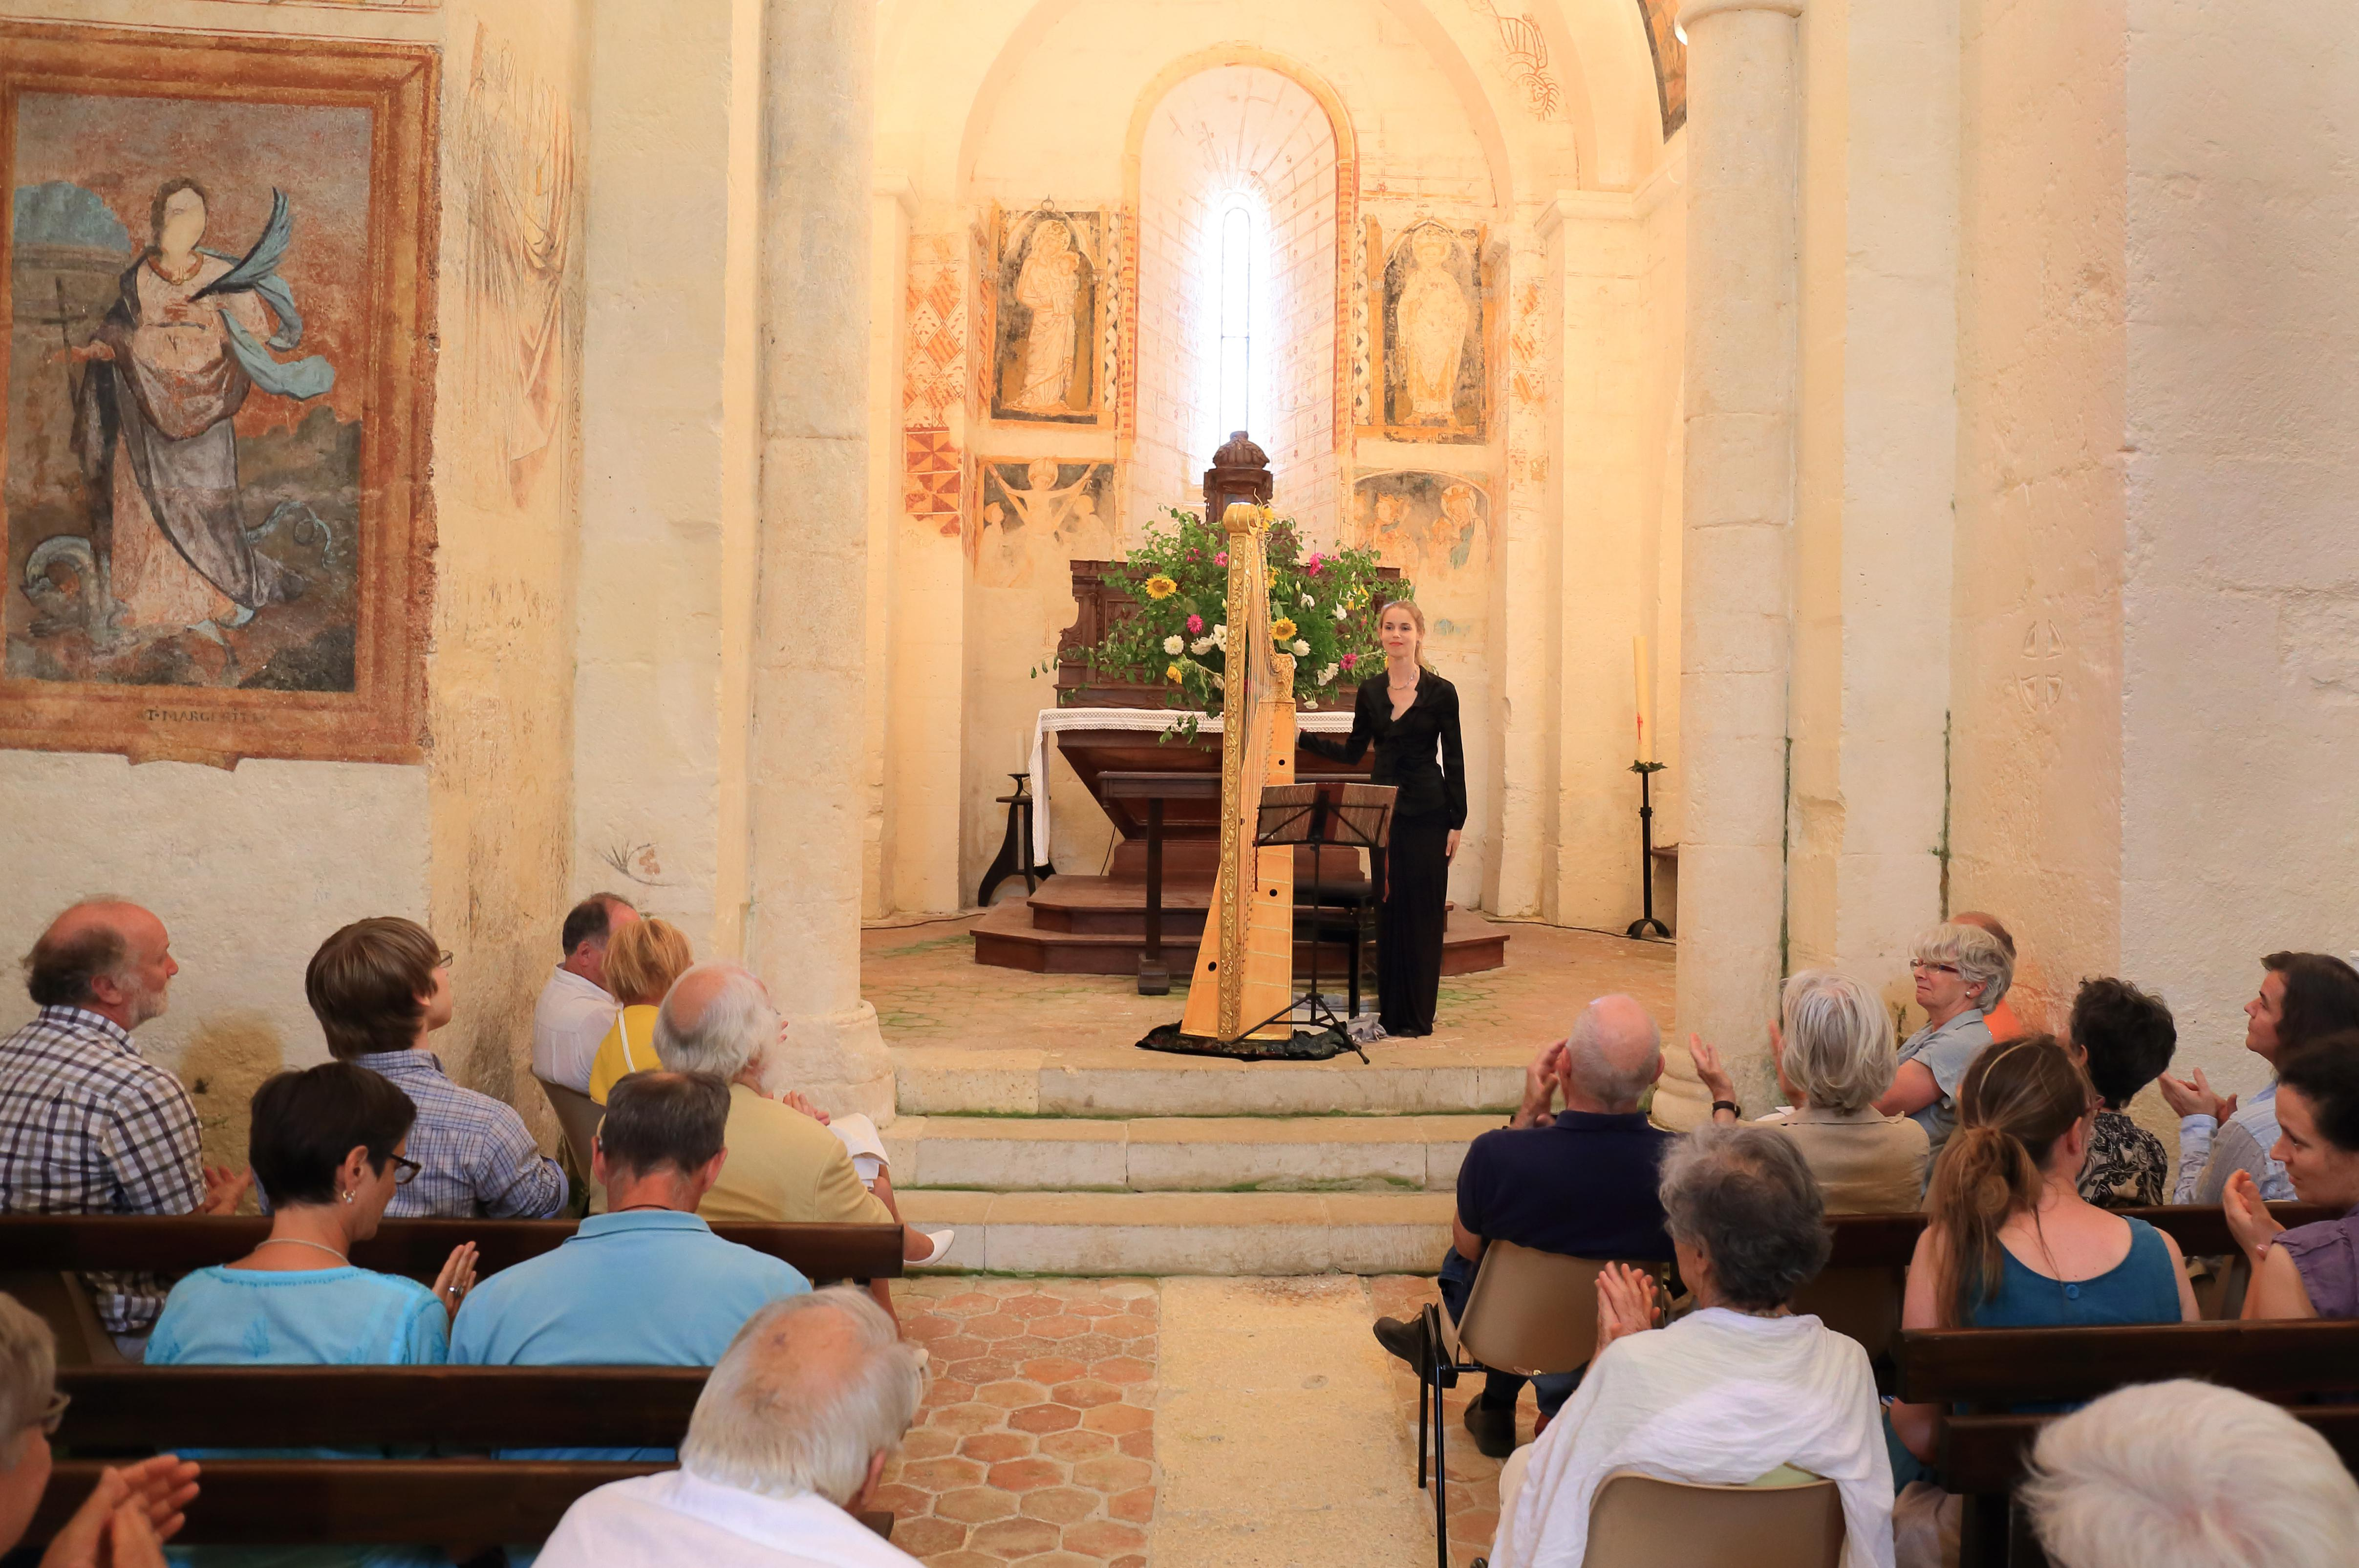 Harpist in a French church